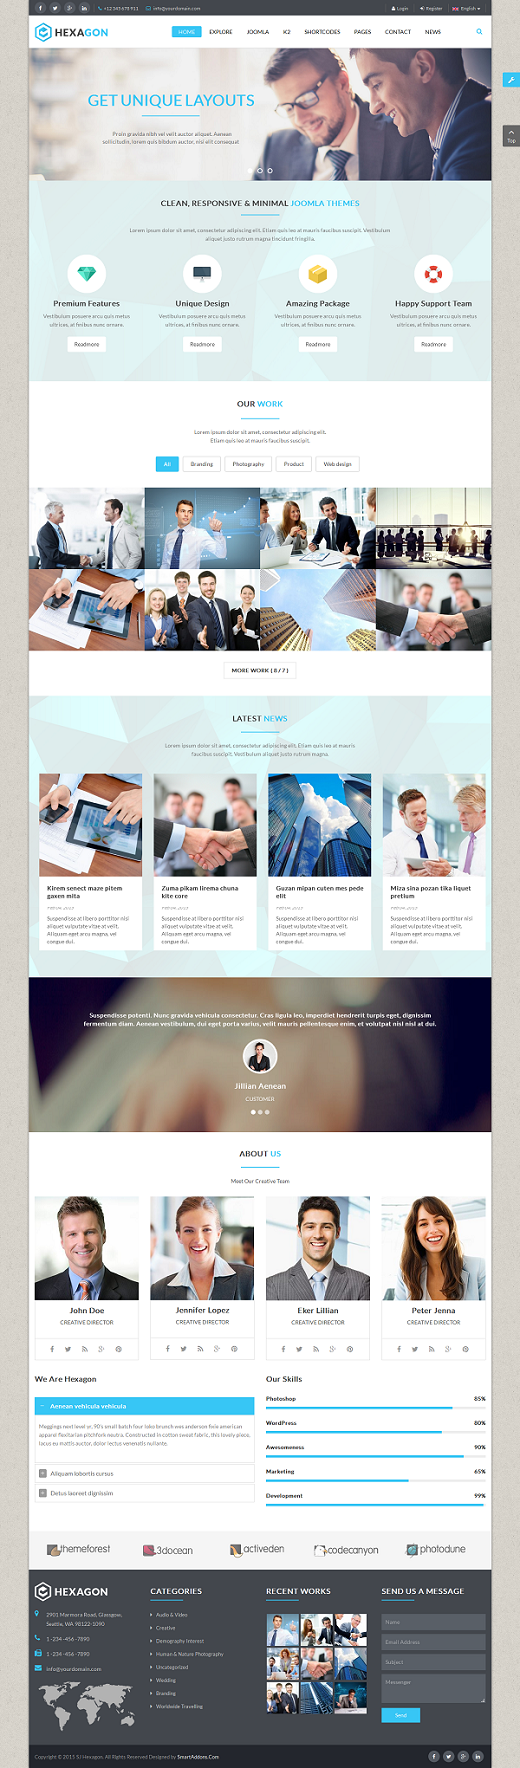 SJ Hexagon - Responsive Joomla Business Template - 03_layout1-boxed.png